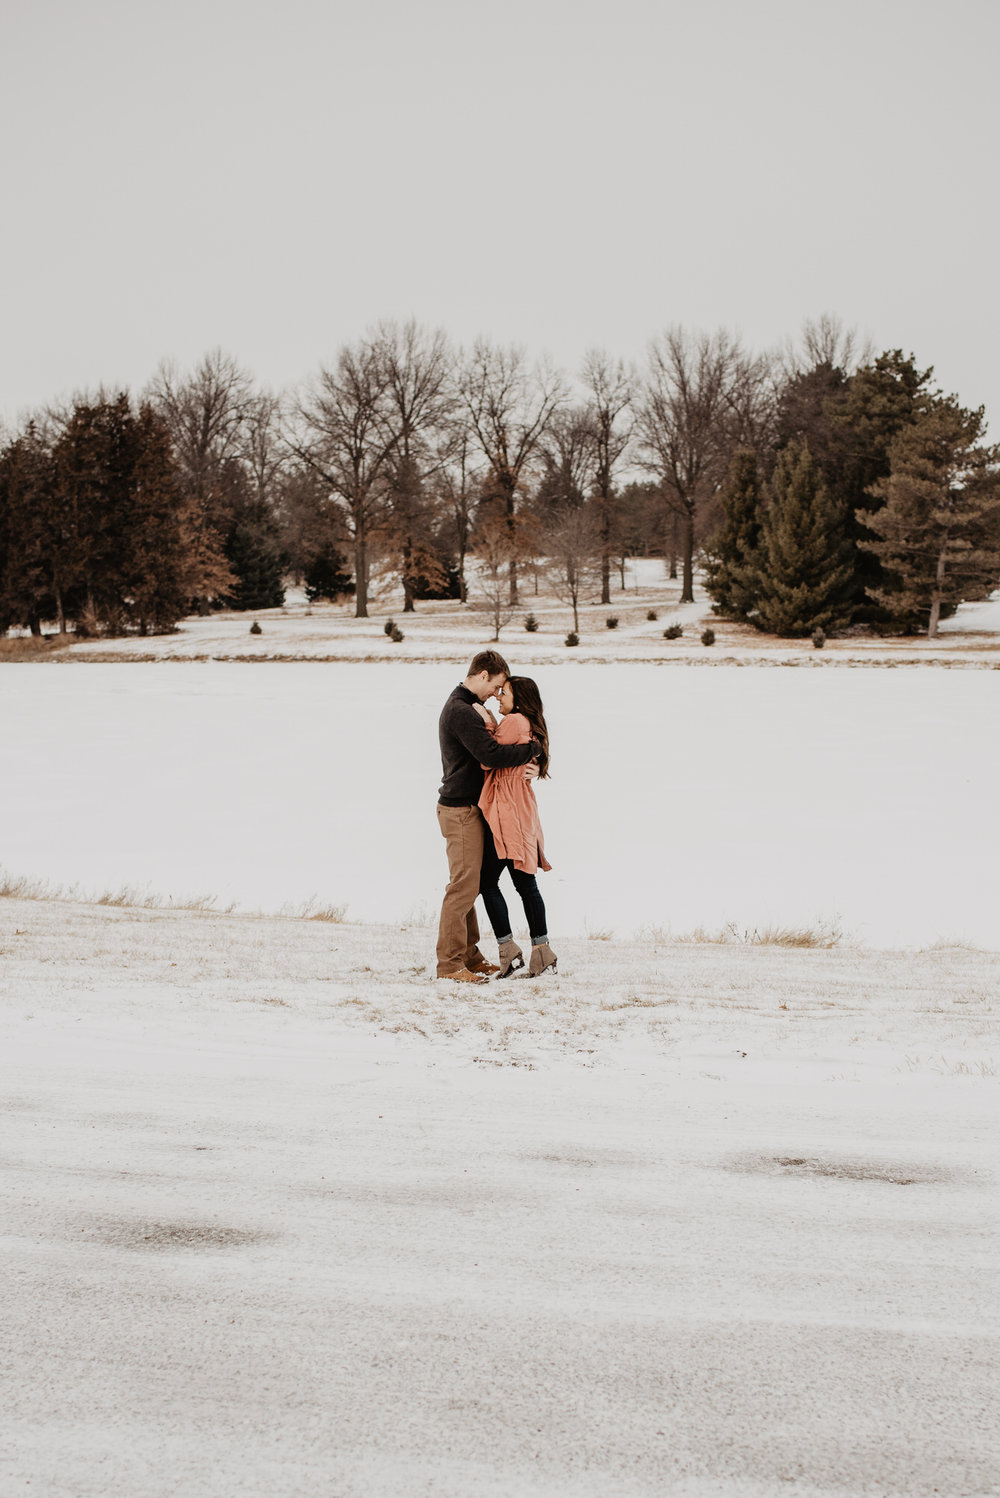 Lincoln-Columbus-Nebraska-Winter-Engagement-Kaylie-Sirek-Photography-11.jpg